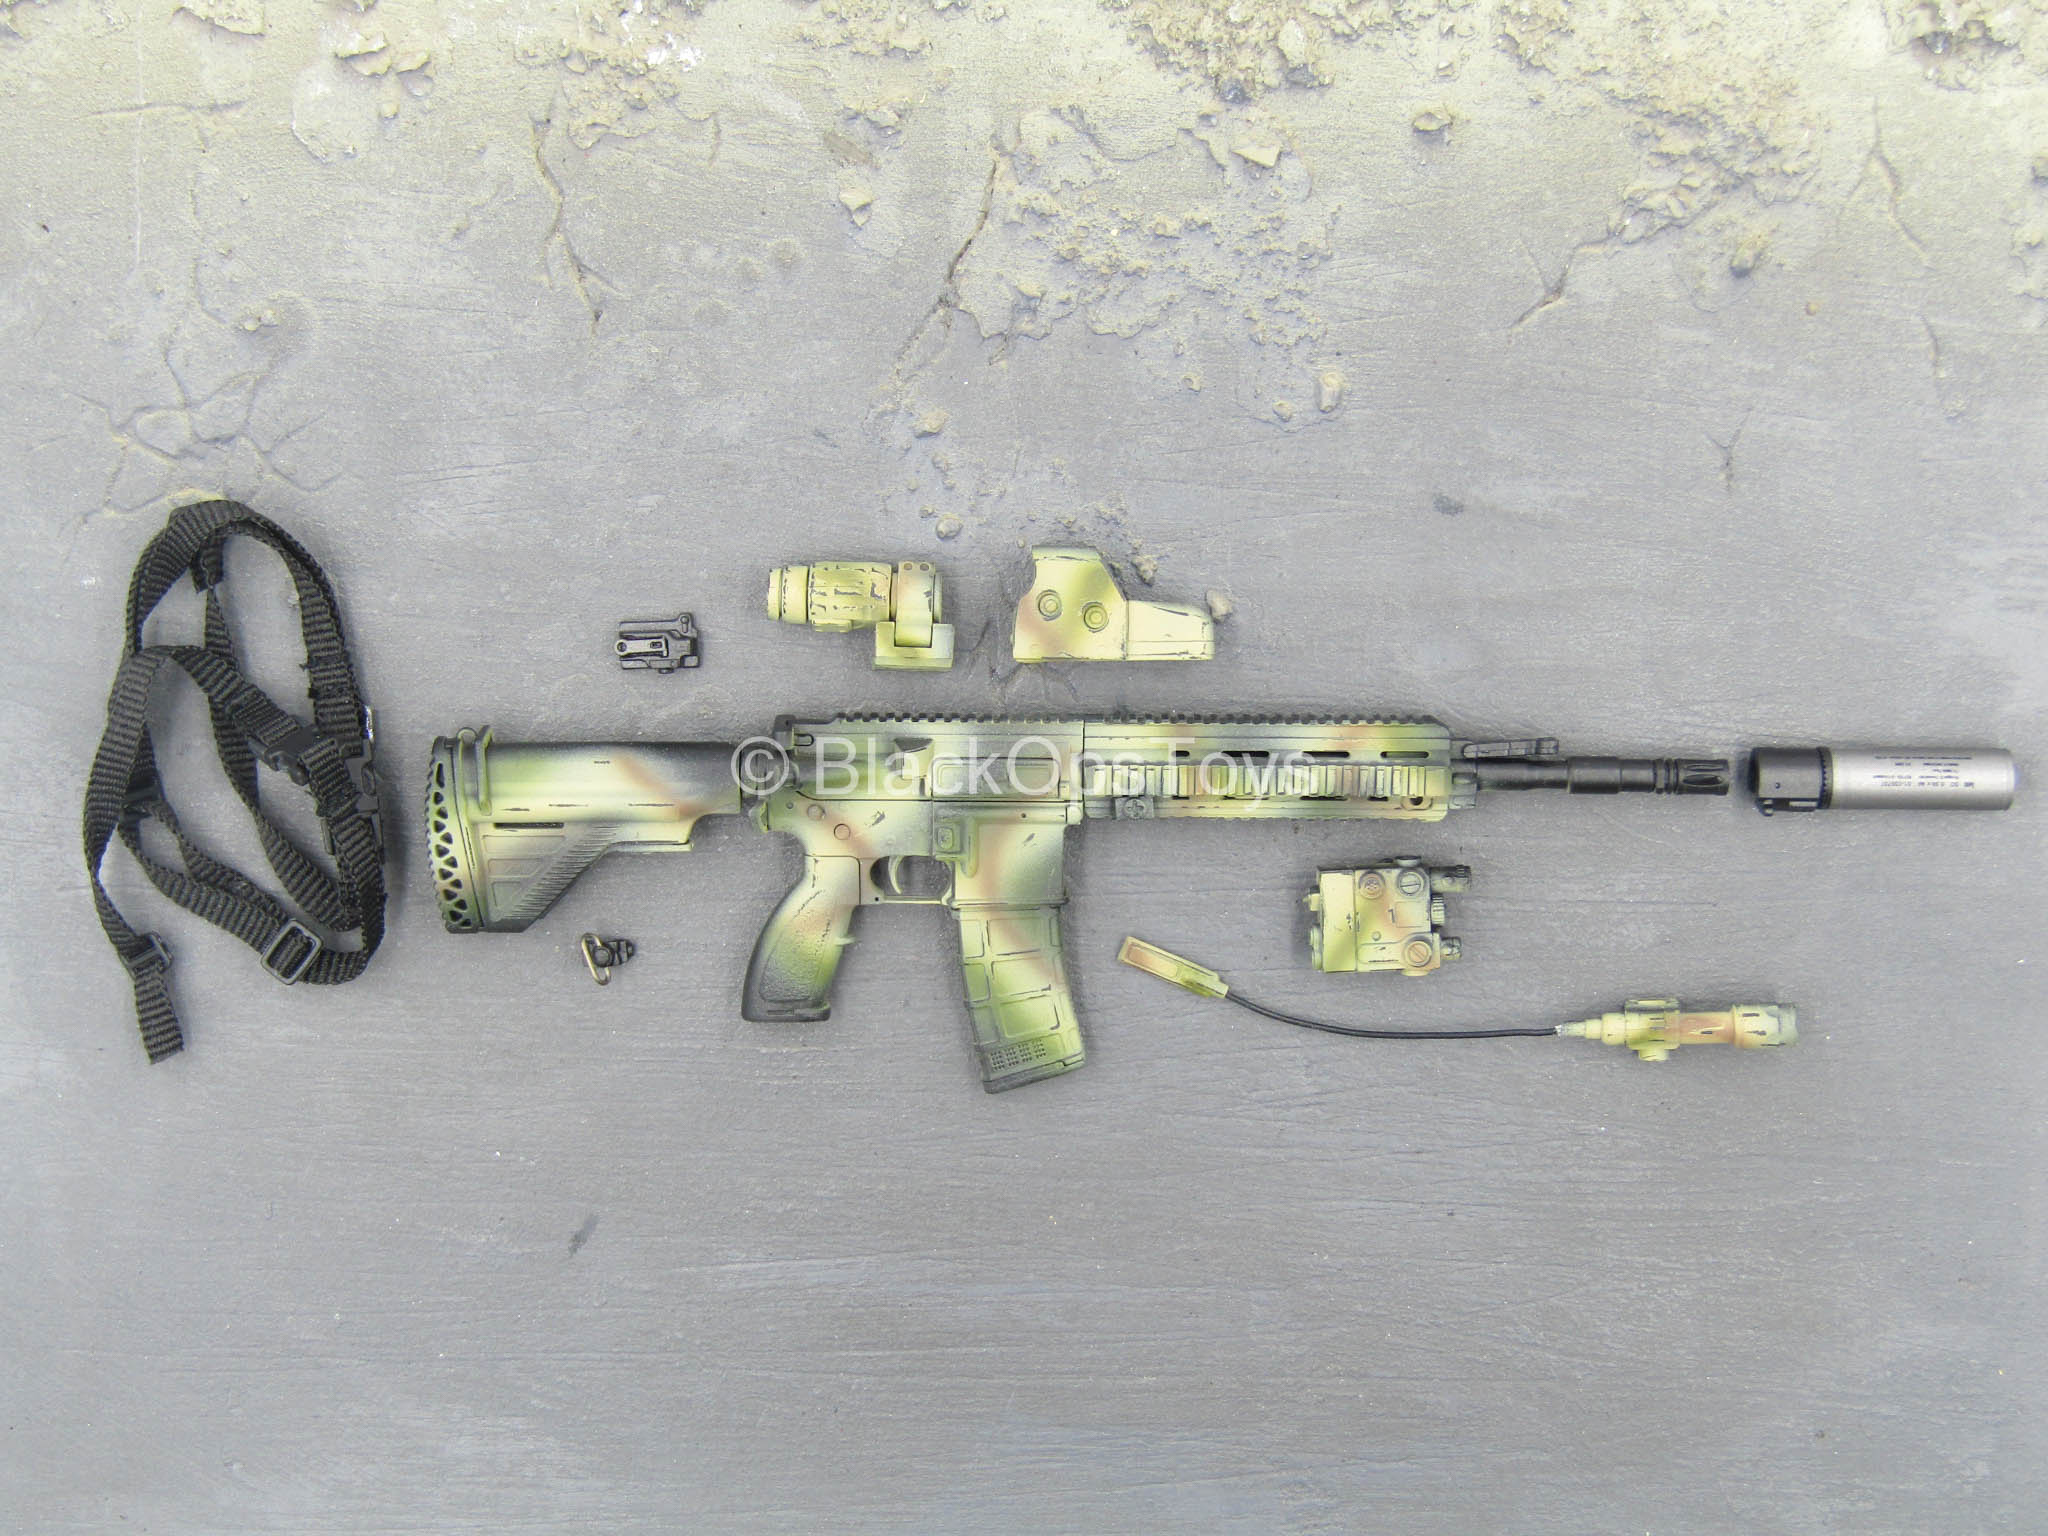 Breacher C.A.G 1//6 scale toy SMU Weathered Camo HK416 Rifle Set